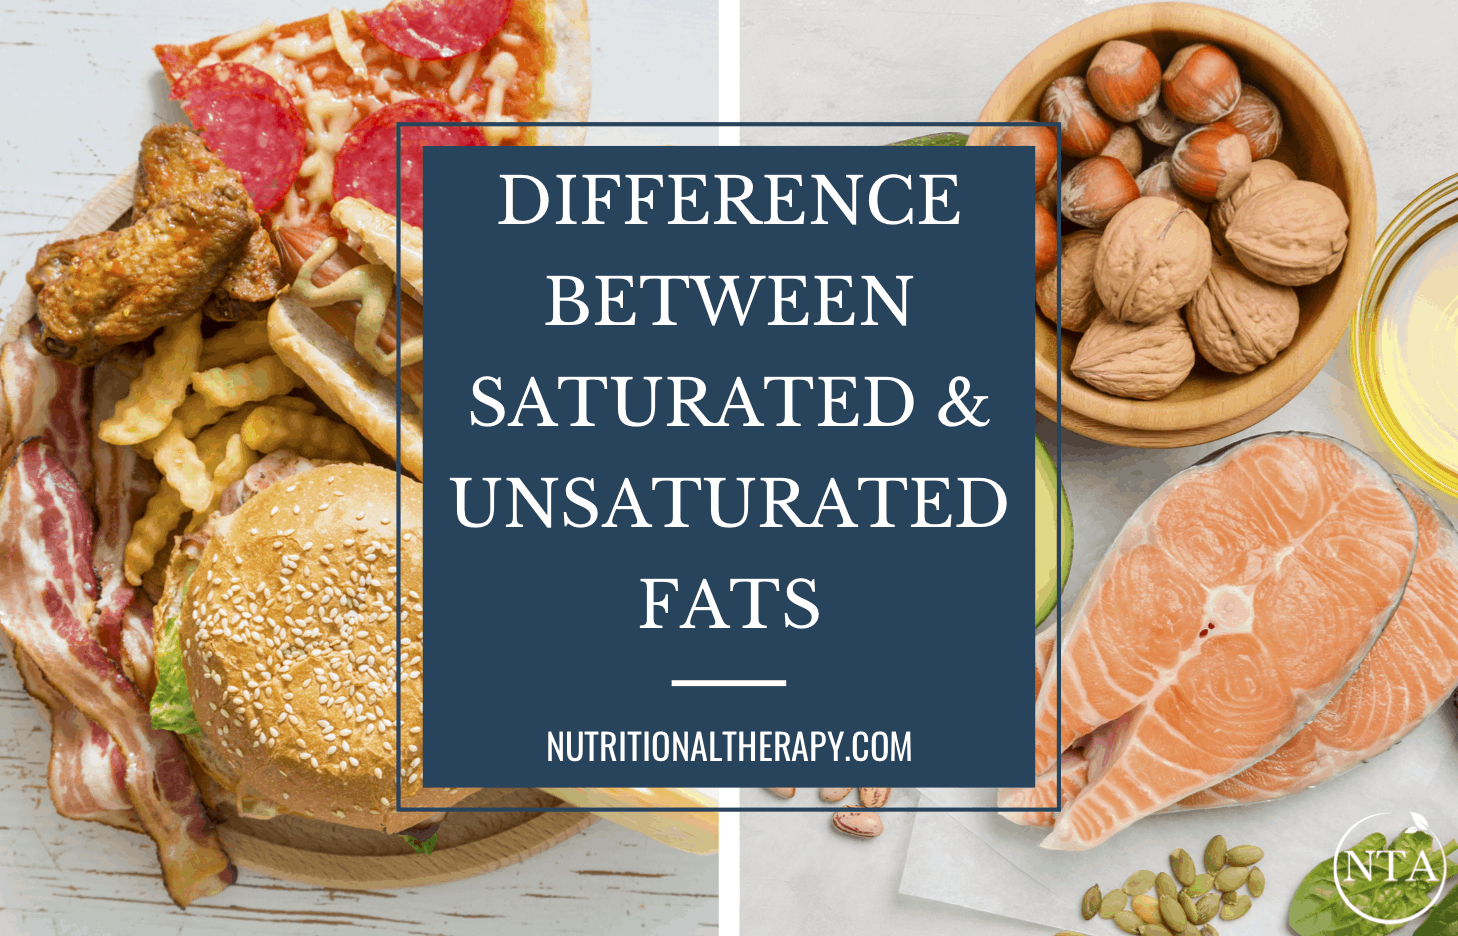 Difference Between Saturated And Unsaturated Fats